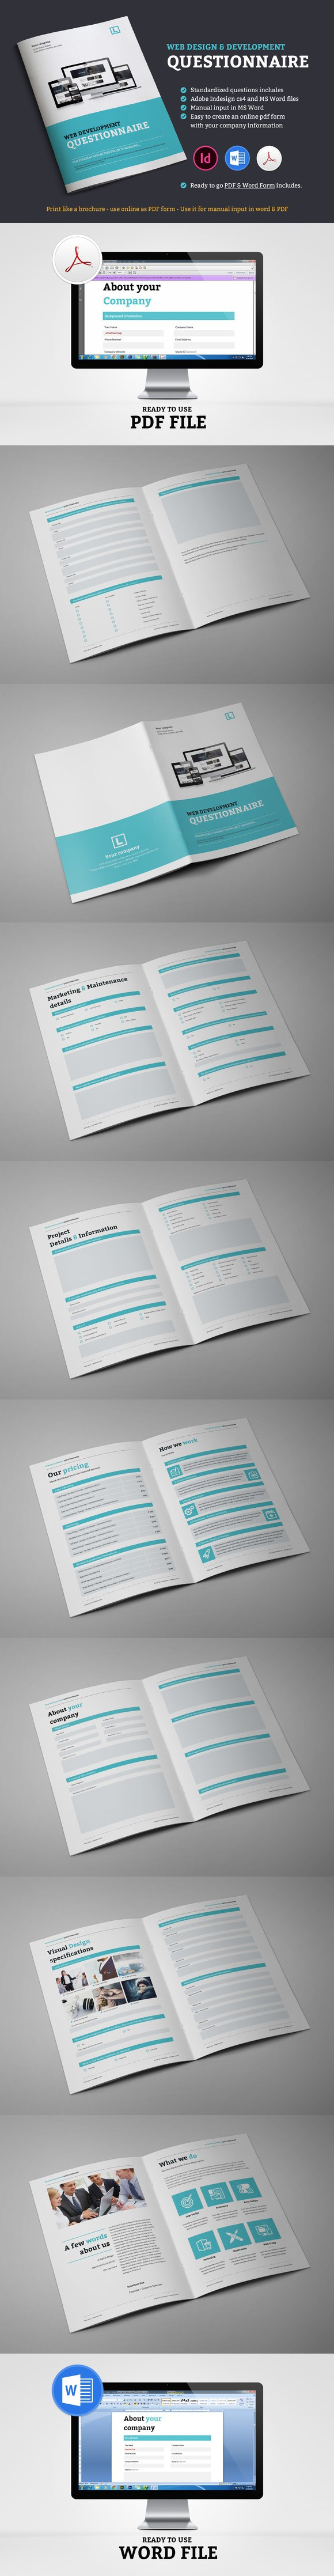 Web design questionnaire. Stationery Templates. $12.00 | Stationery ...